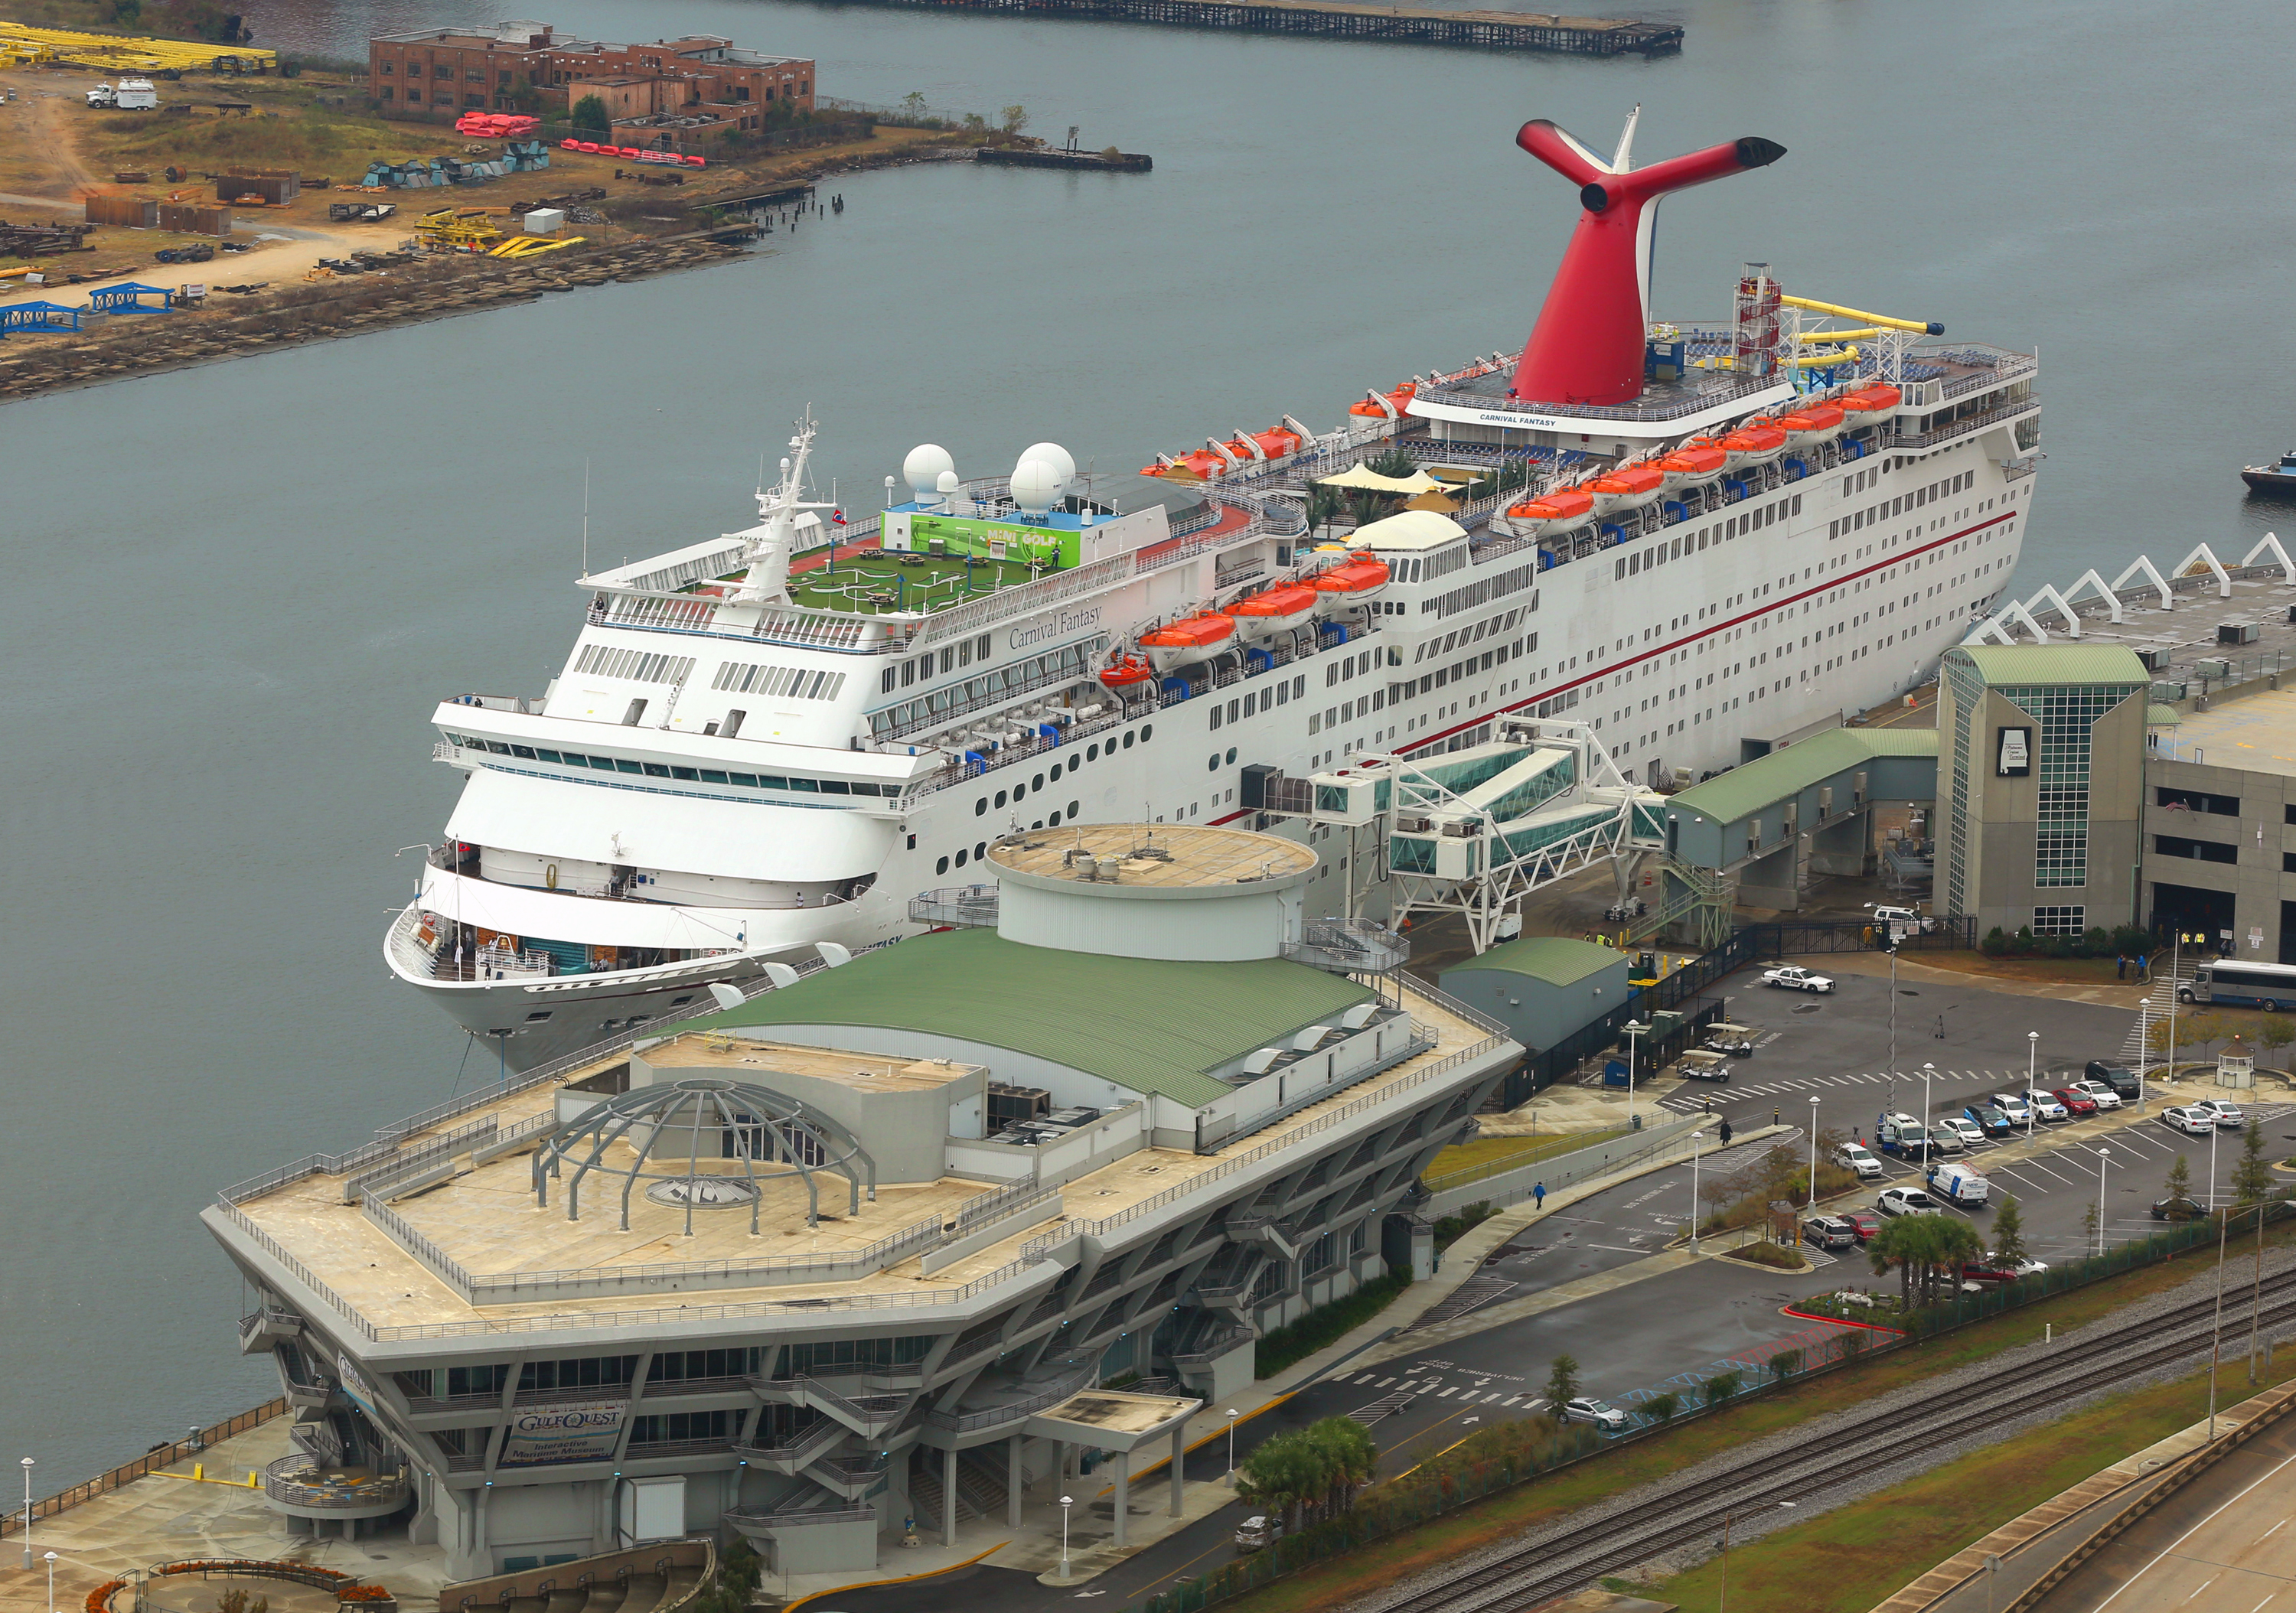 Carnival Fantasy Arrives At Mobile, ALA., Kicks Off Four- And Five-Day Cruise Schedule From Alabama Cruise Terminal Today